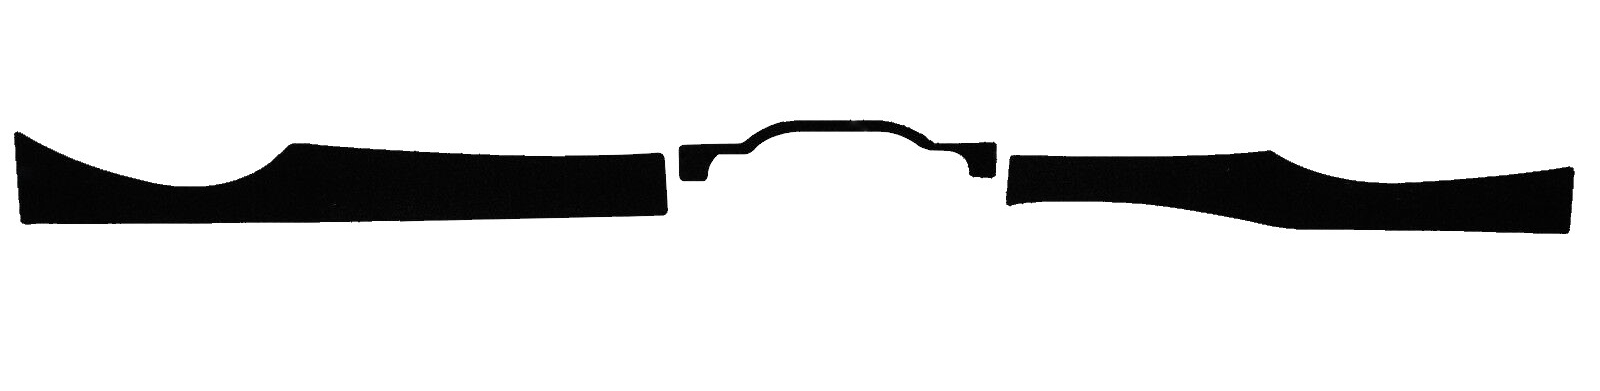 1984-1996 Corvette Hood Seal Kit